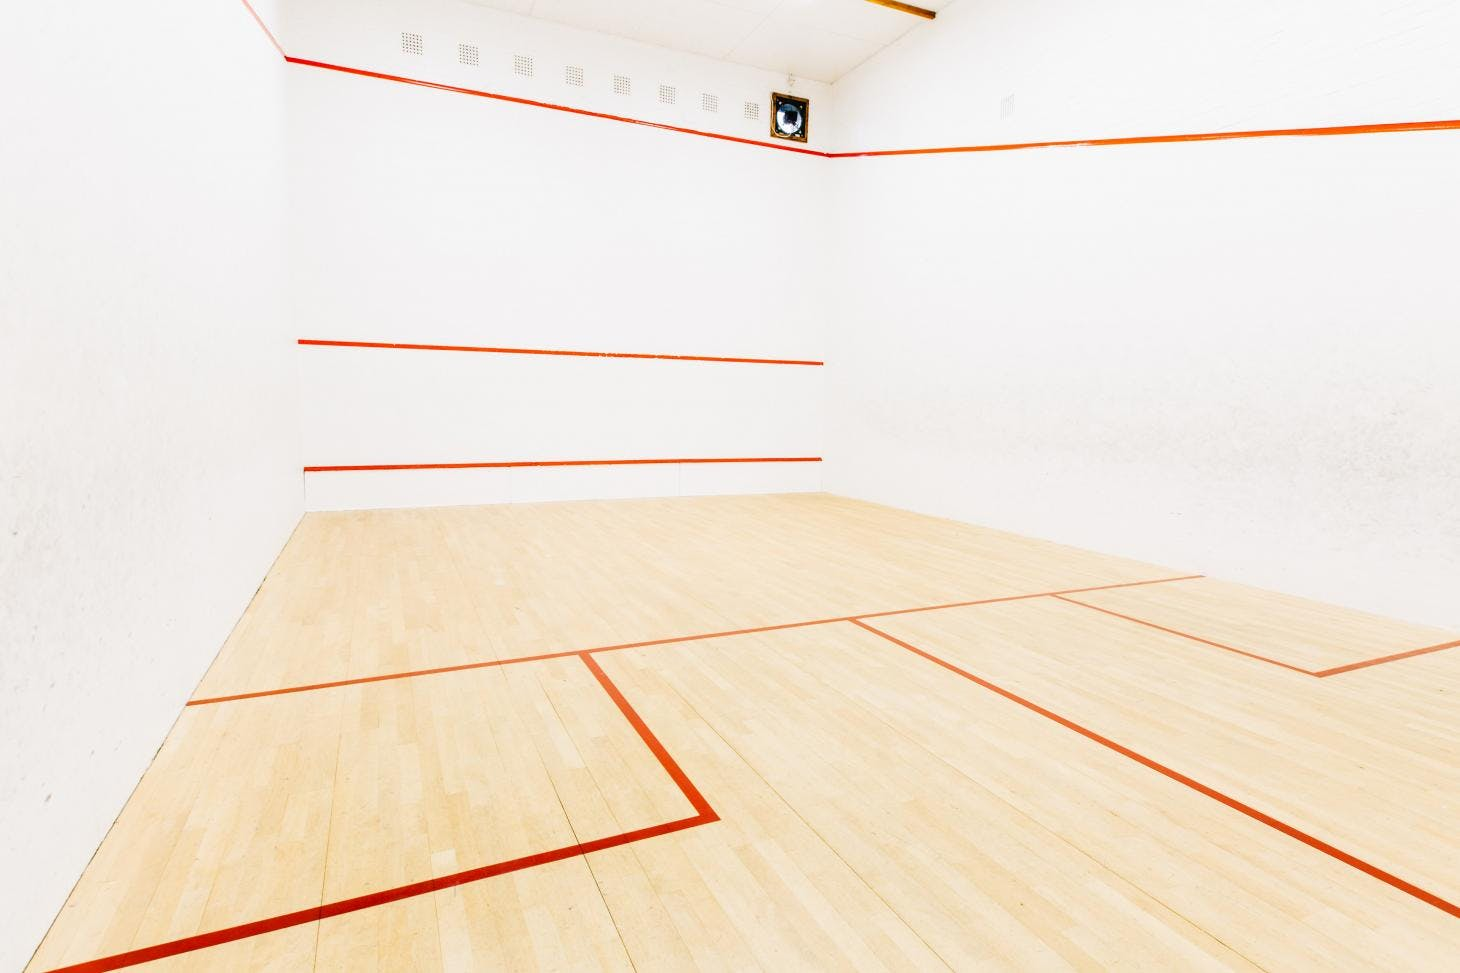 Swan Pool and Leisure Centre Indoor | Hard squash court